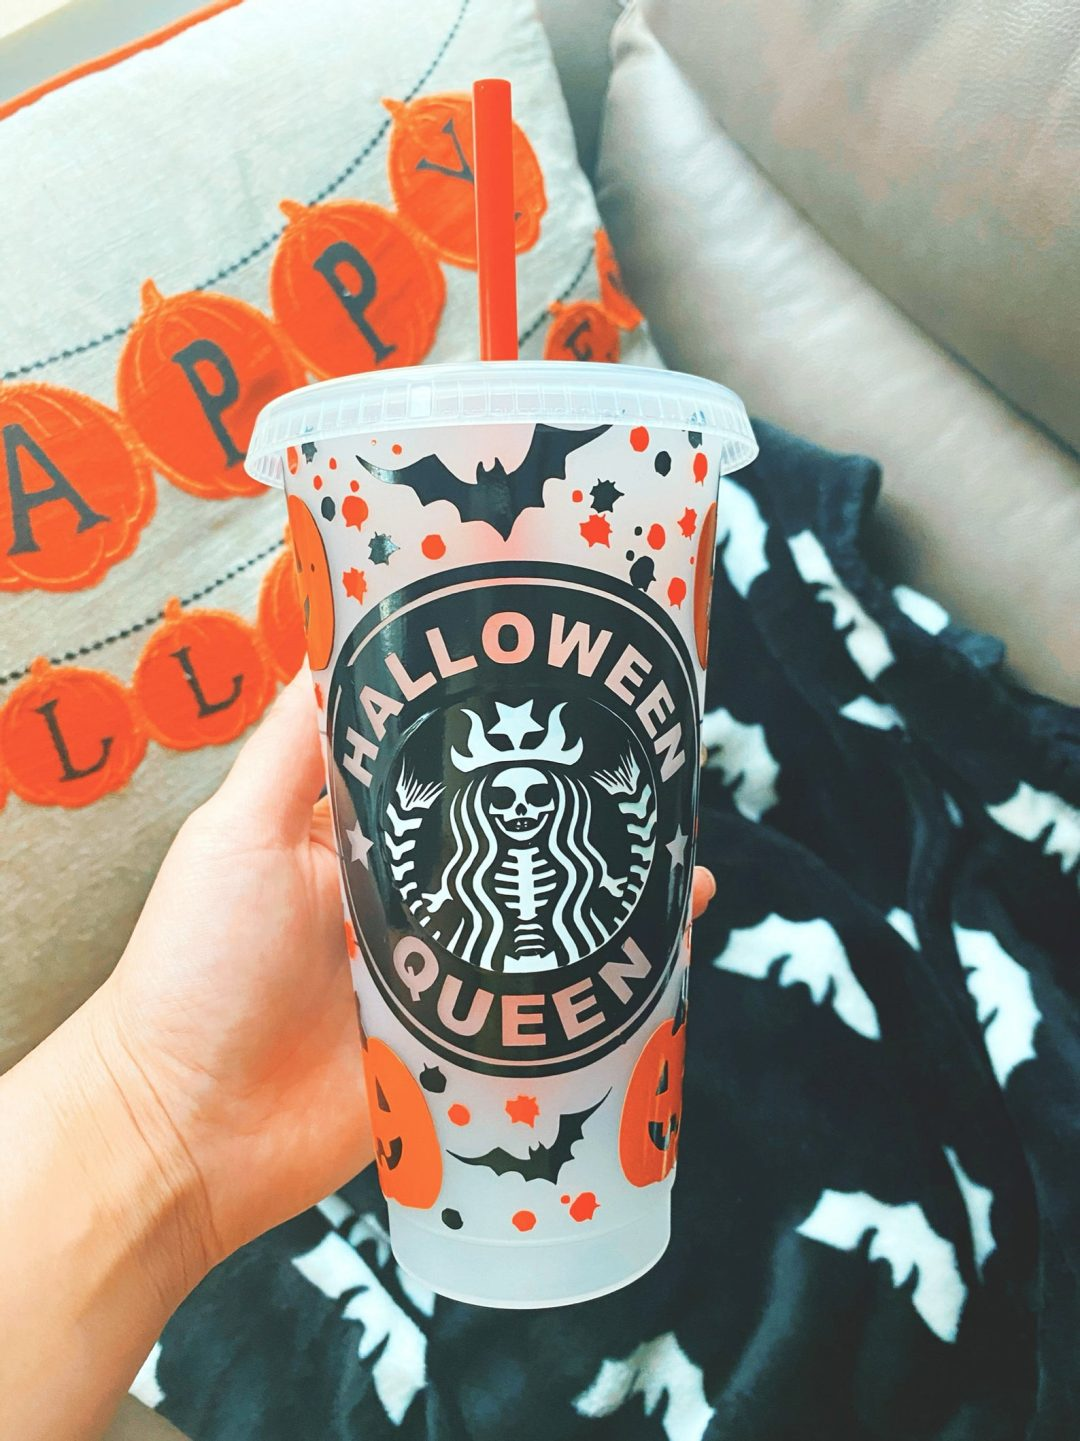 25 Spooky Customized Halloween Starbucks Cups To Get in 2021